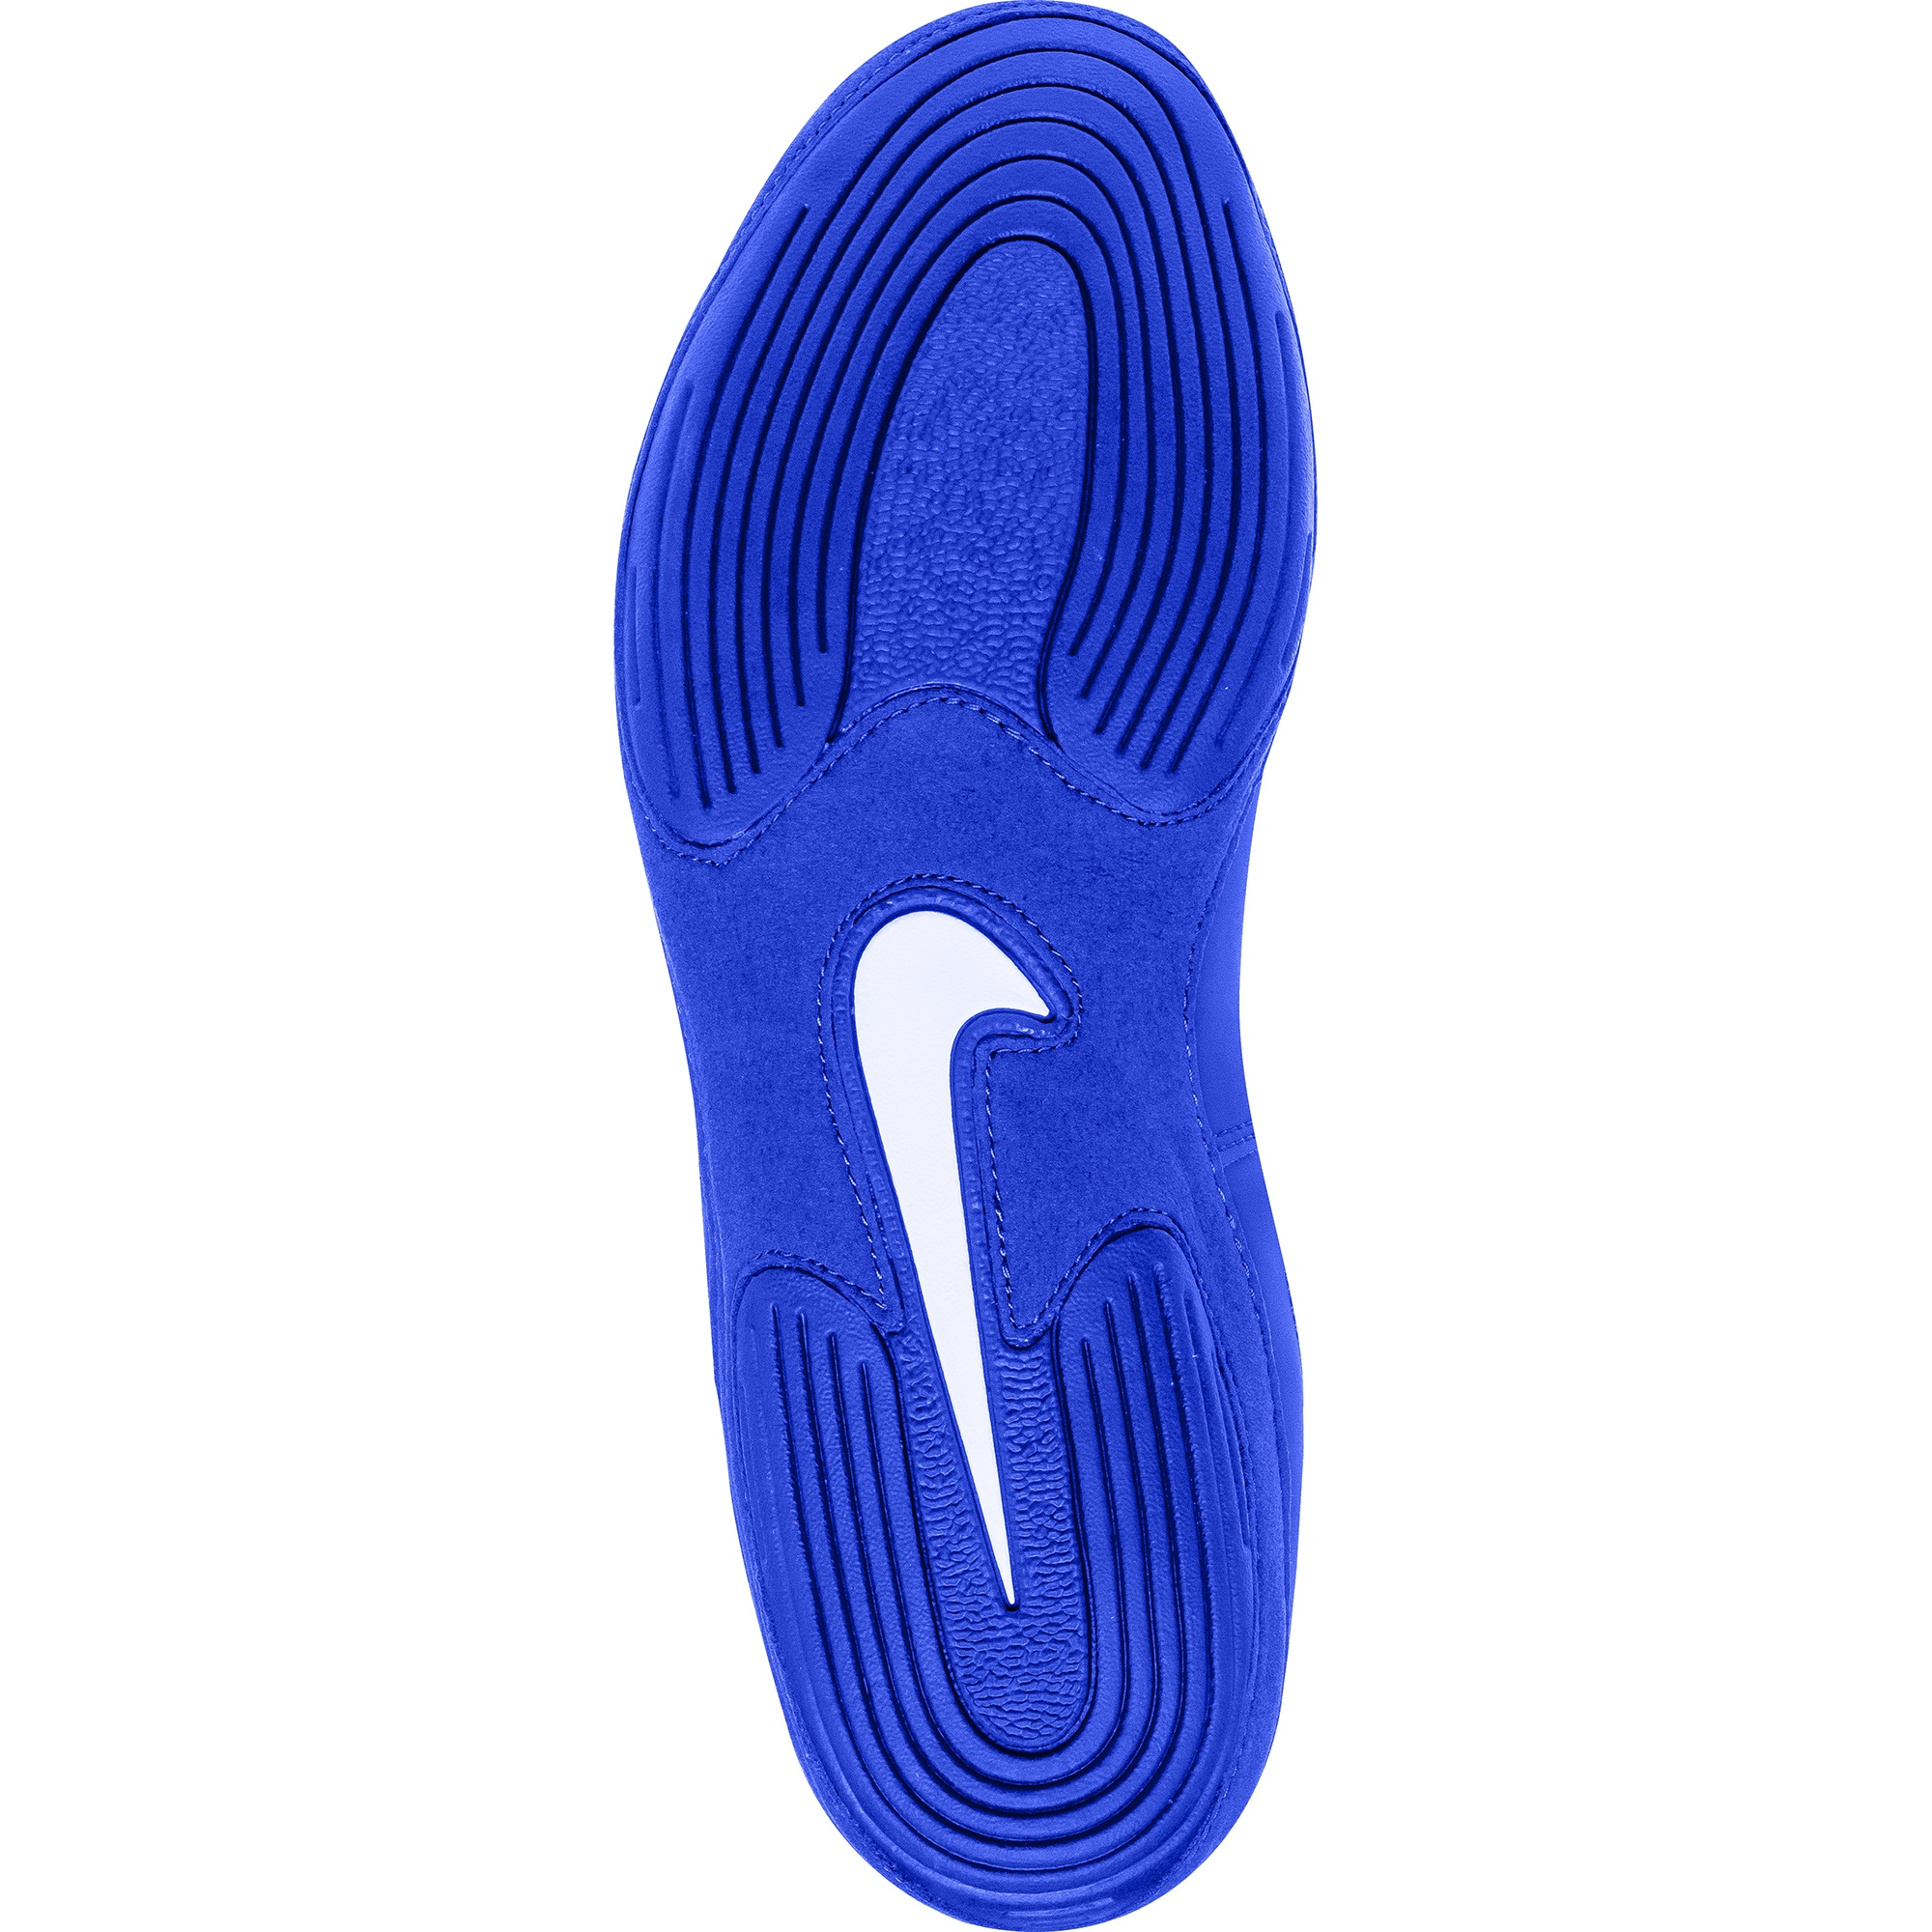 size 40 f04ff b703d Nike Inflict 3 Royal Blue Silver mainNike Inflict 3 Royal Blue Silver  insideNike Inflict 3 Royal Blue Silver frontNike Inflict 3 Royal Blue Silver  ...